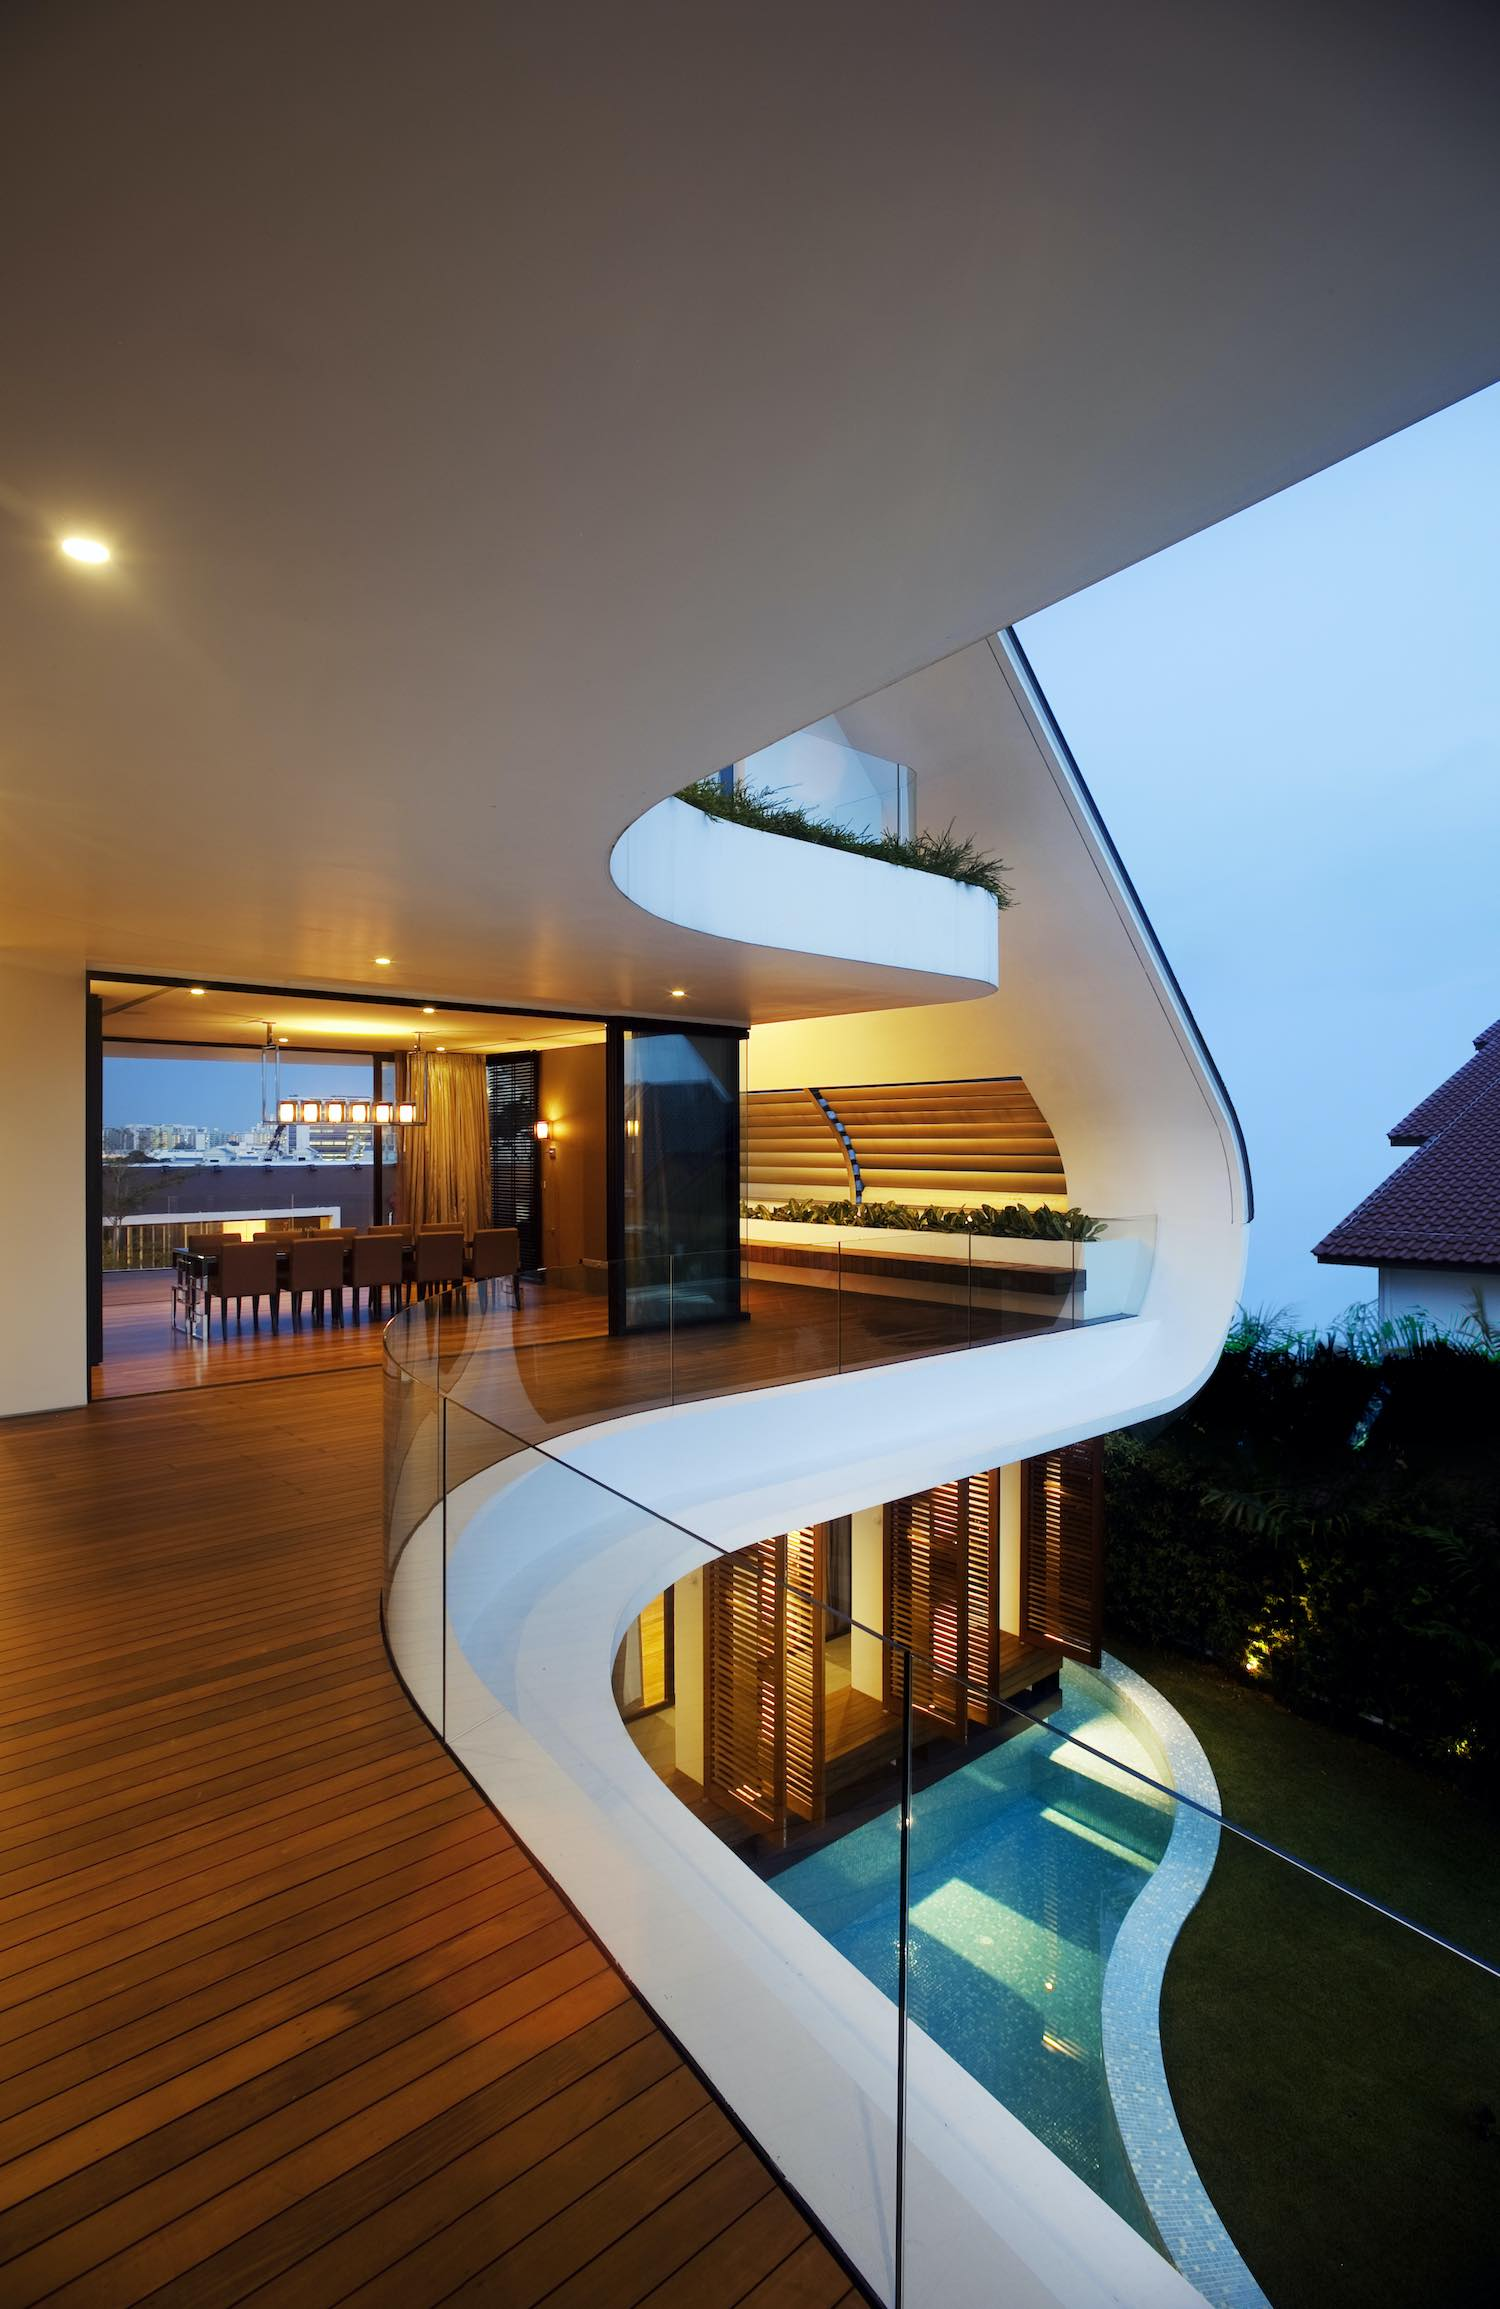 curvy balconies covered with parquet wood material